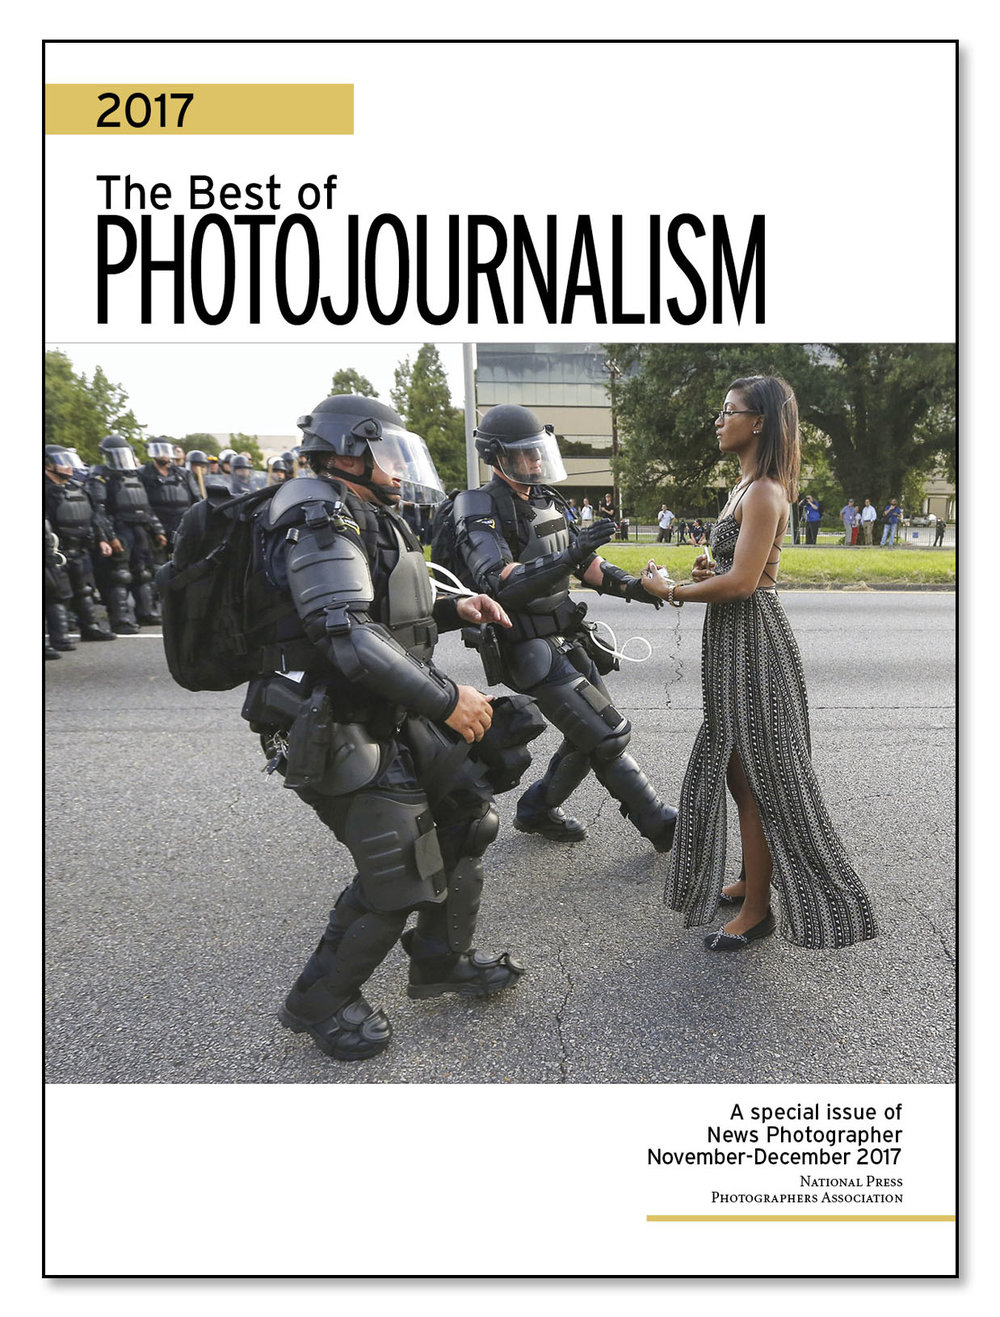 The Best of Photojournalism -